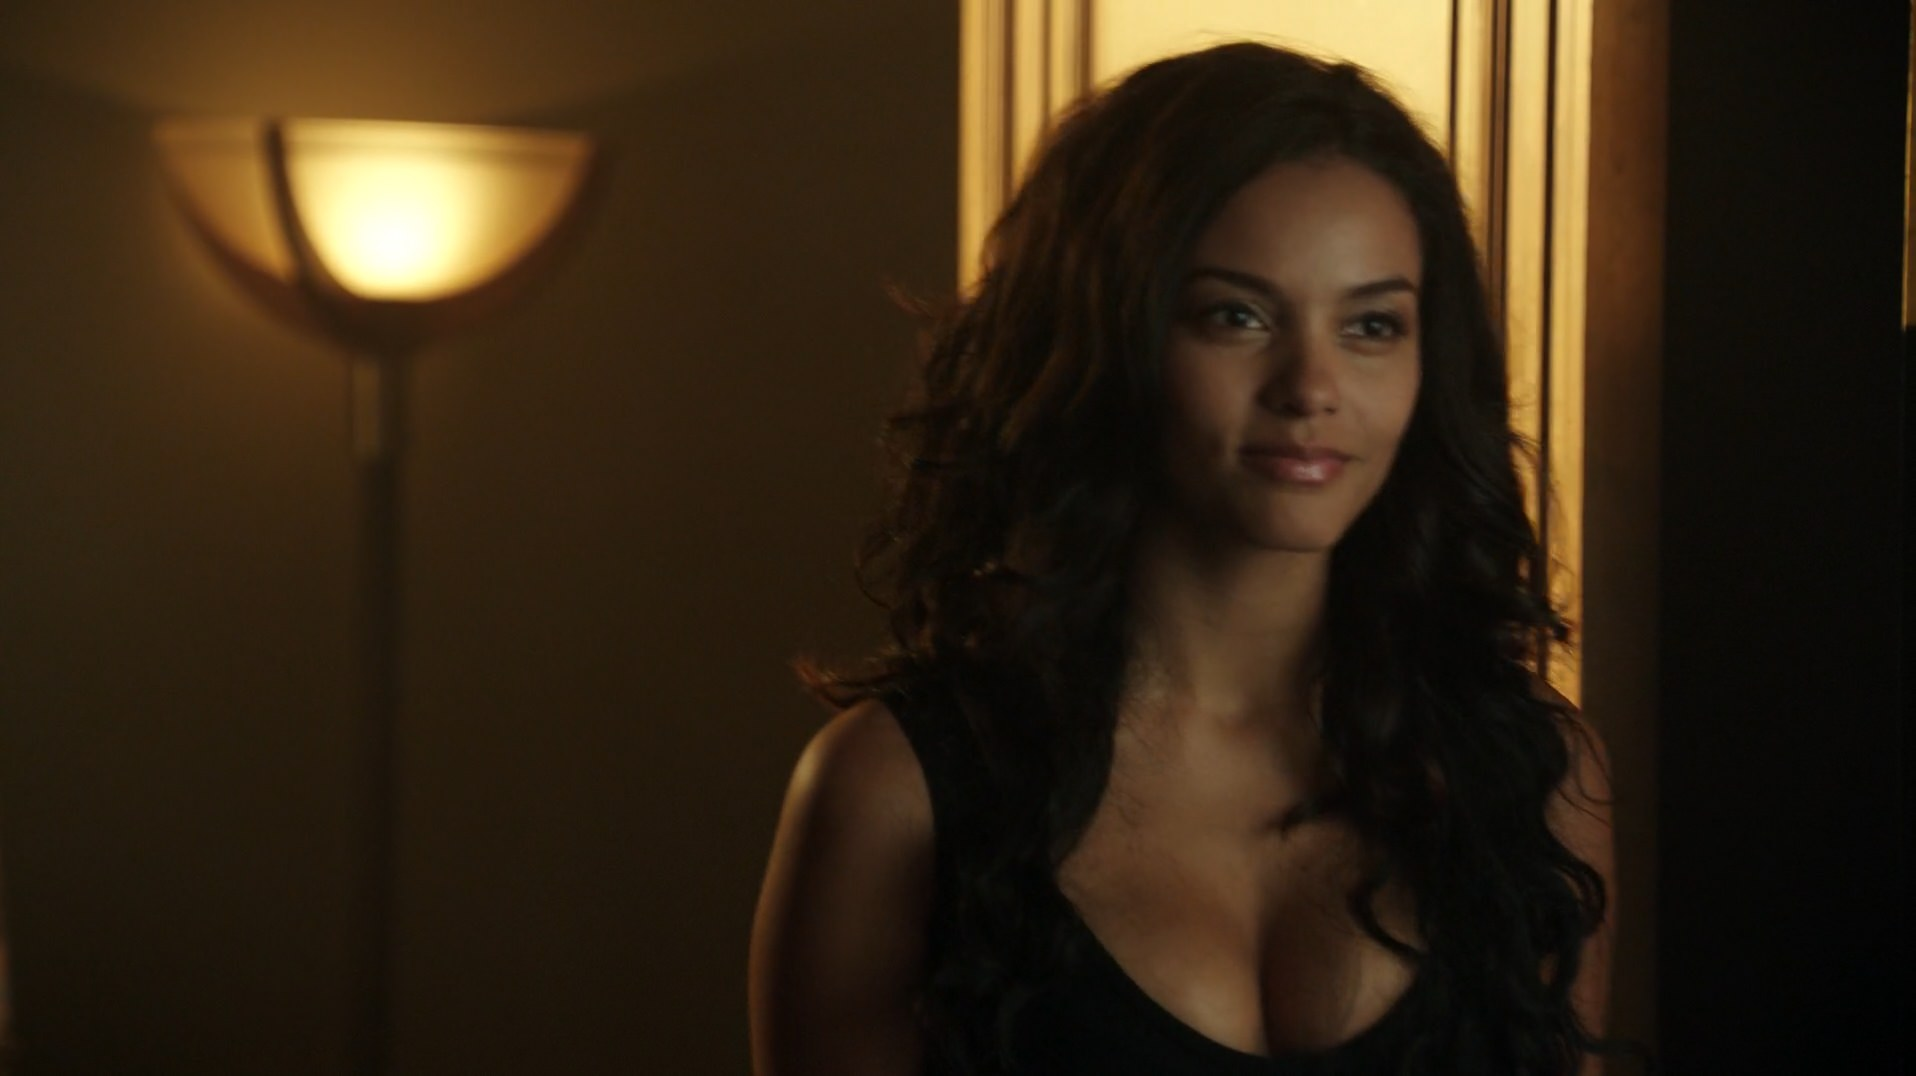 jessica lucas in nude sex